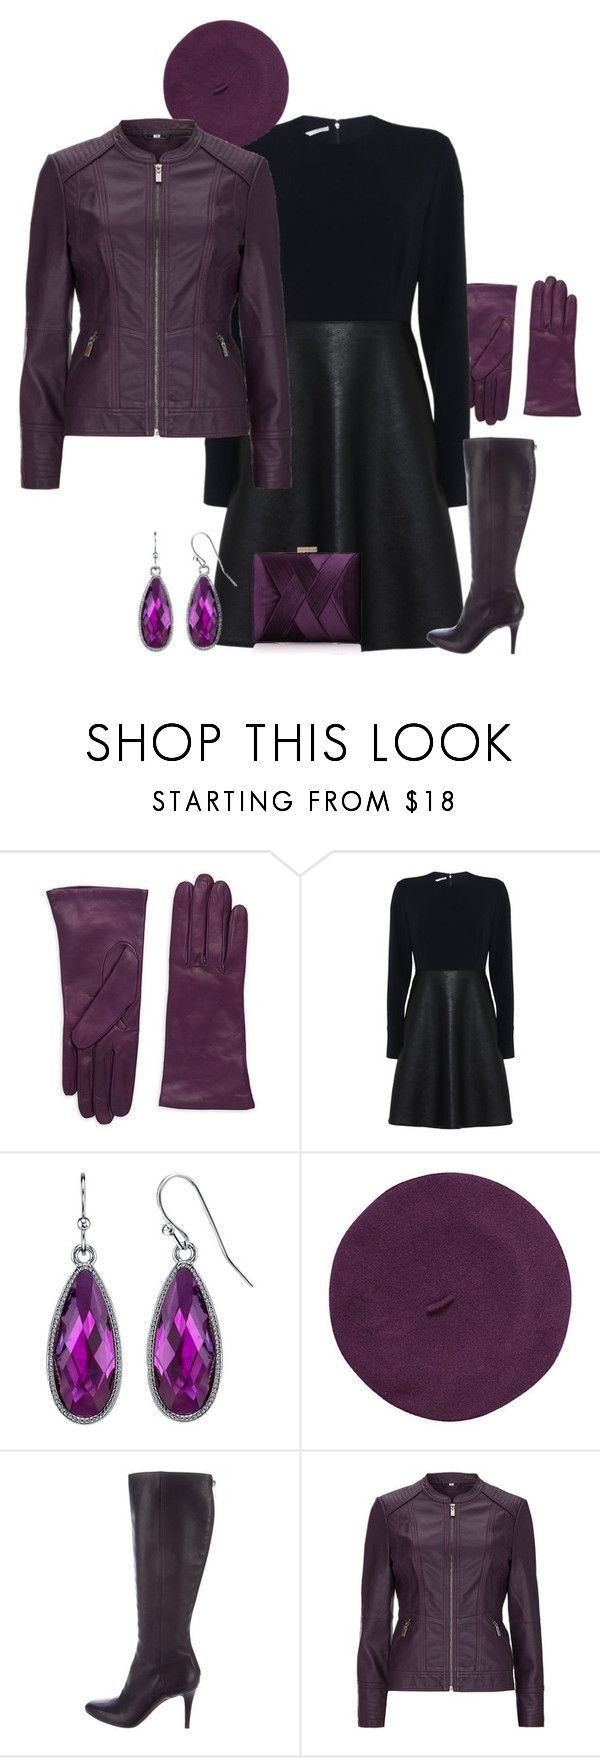 """Nicely dressed in violet"" by andrea-barbara-raemy on Polyvore featuring Mode, Portolano, STELLA McCARTNEY, 1928, Parkhurst, Jimmy Choo, House of Fraser und La Regale"